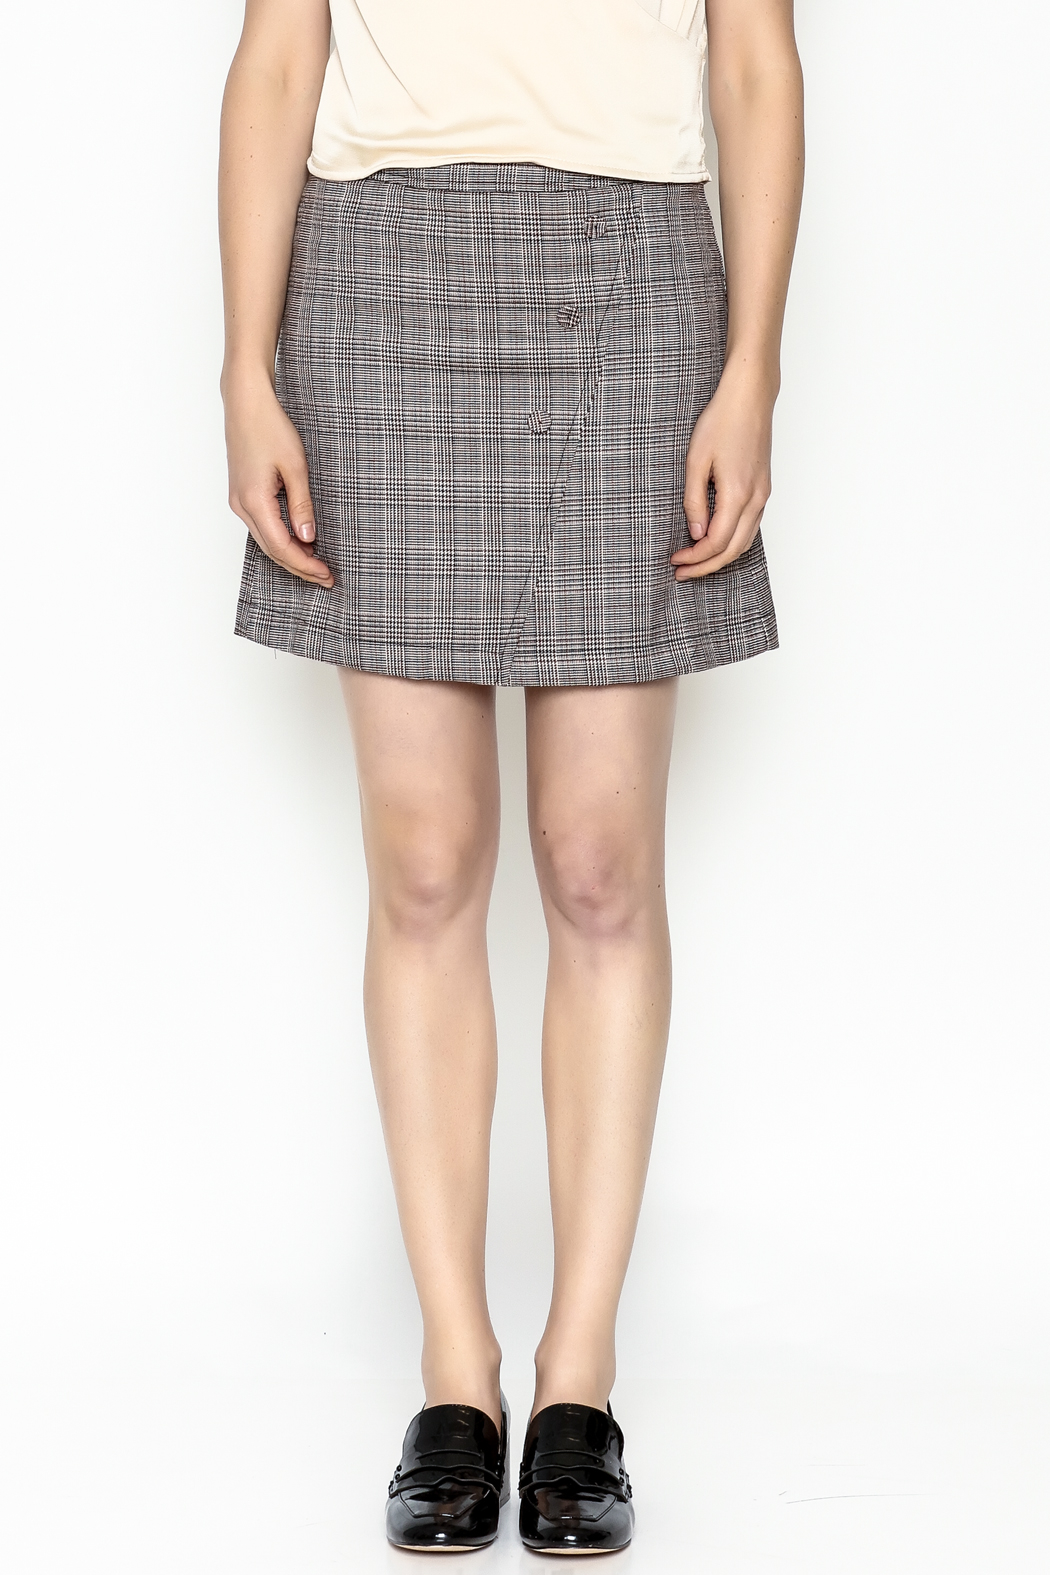 Very J Plaid Skirt - Front Full Image